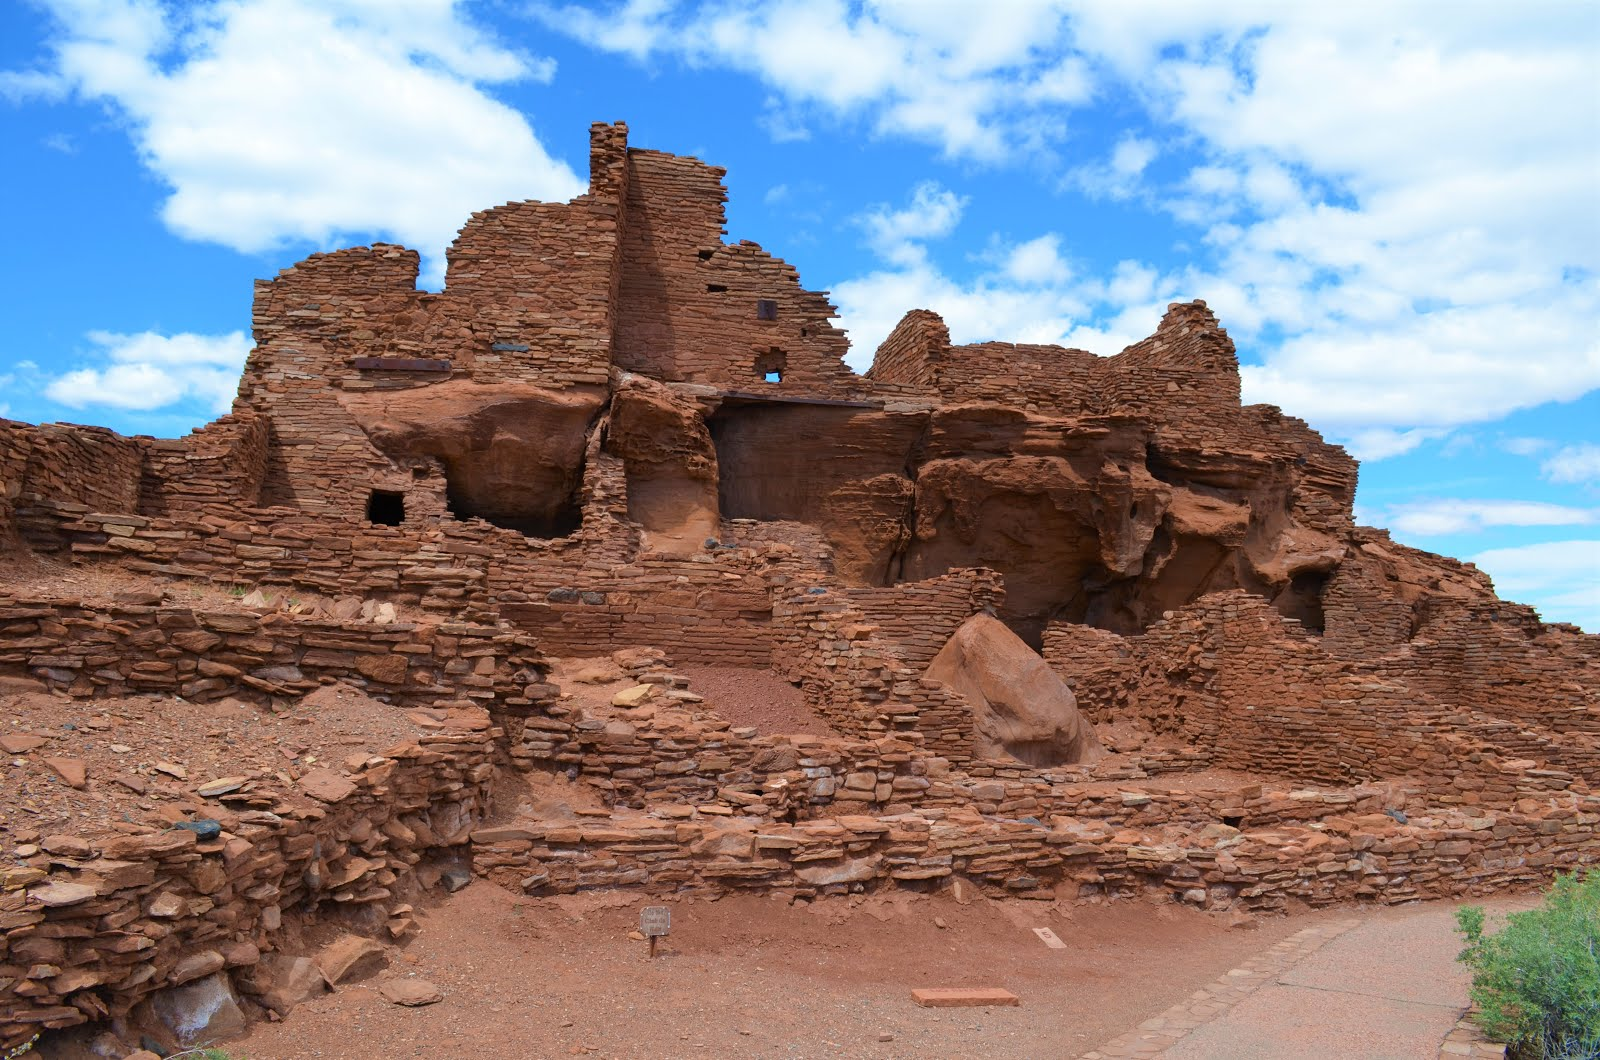 Wupatki pueblos